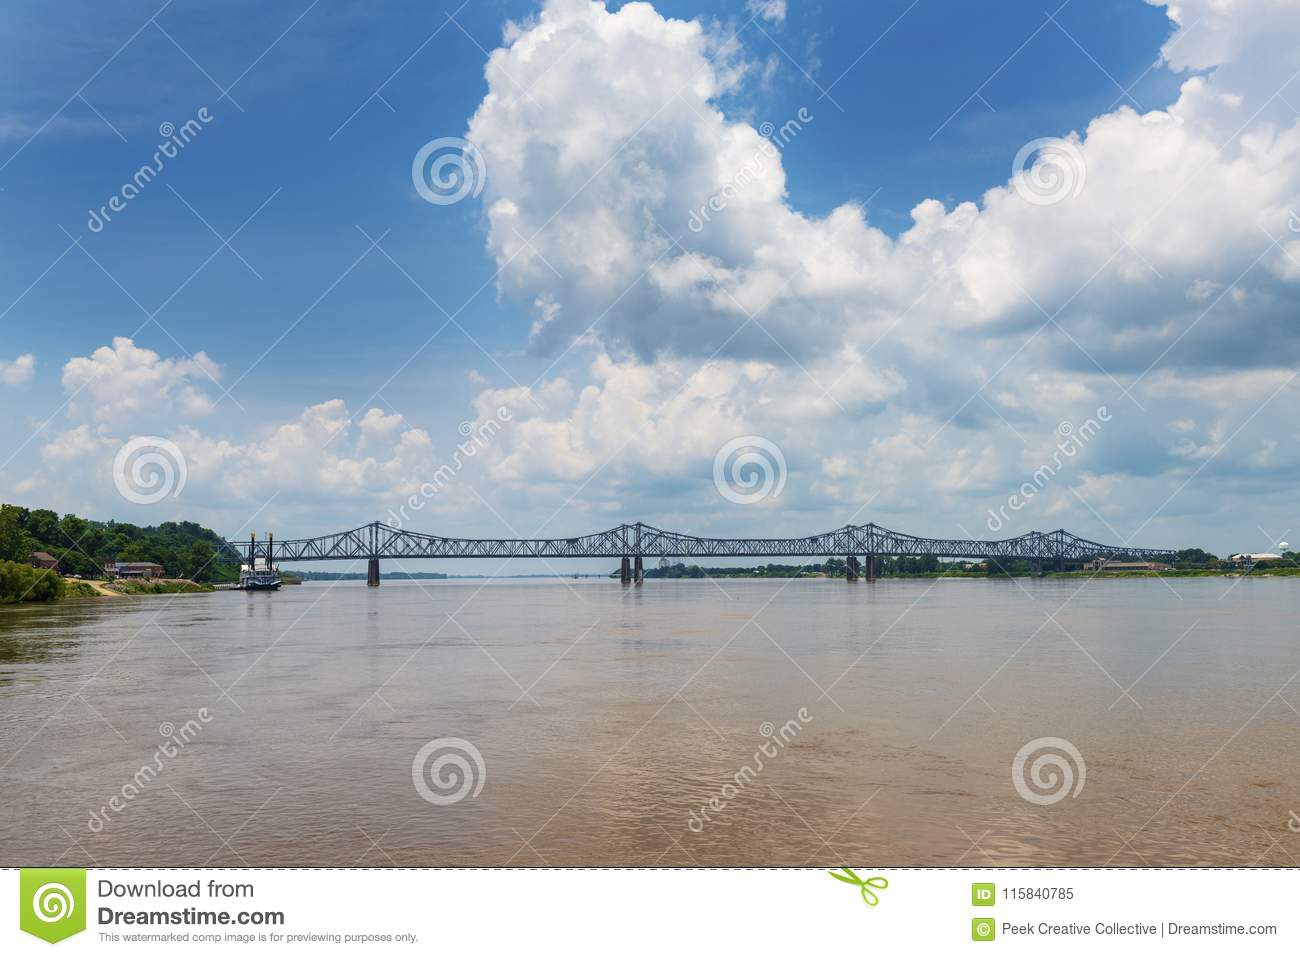 View of the bridge over the Mississippi River near the city of Natchez, Mississippi, USA;